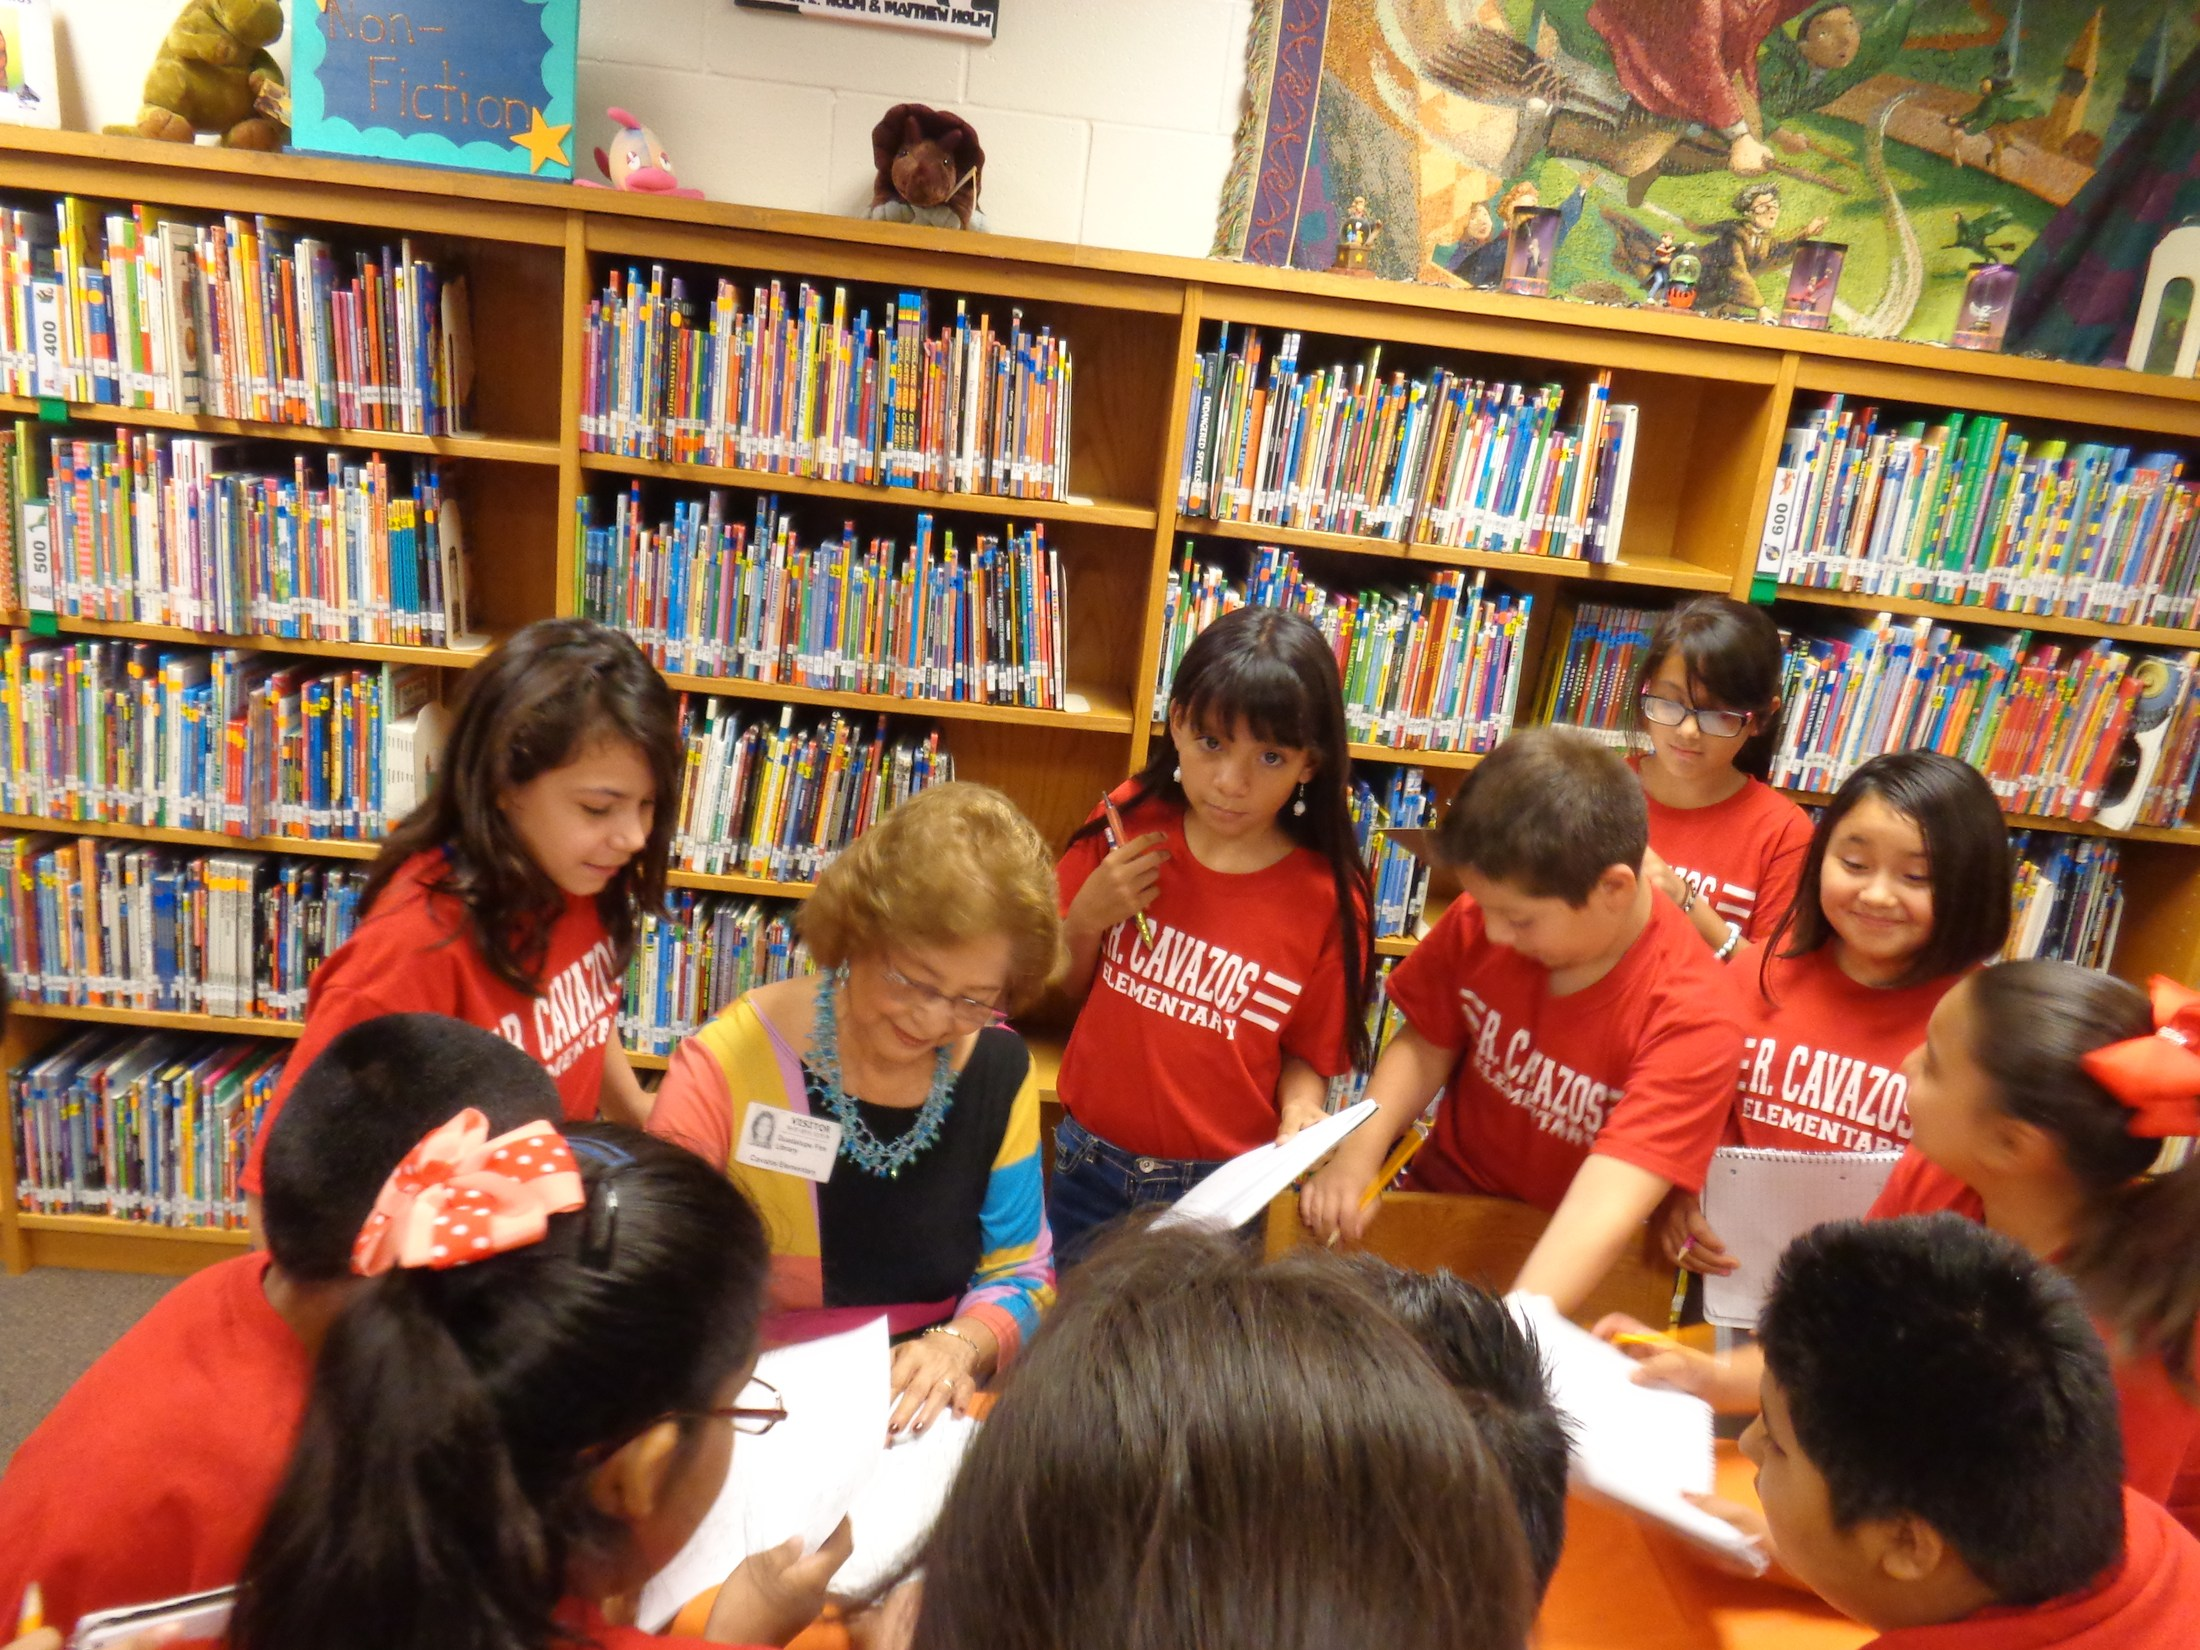 Author signing book with students